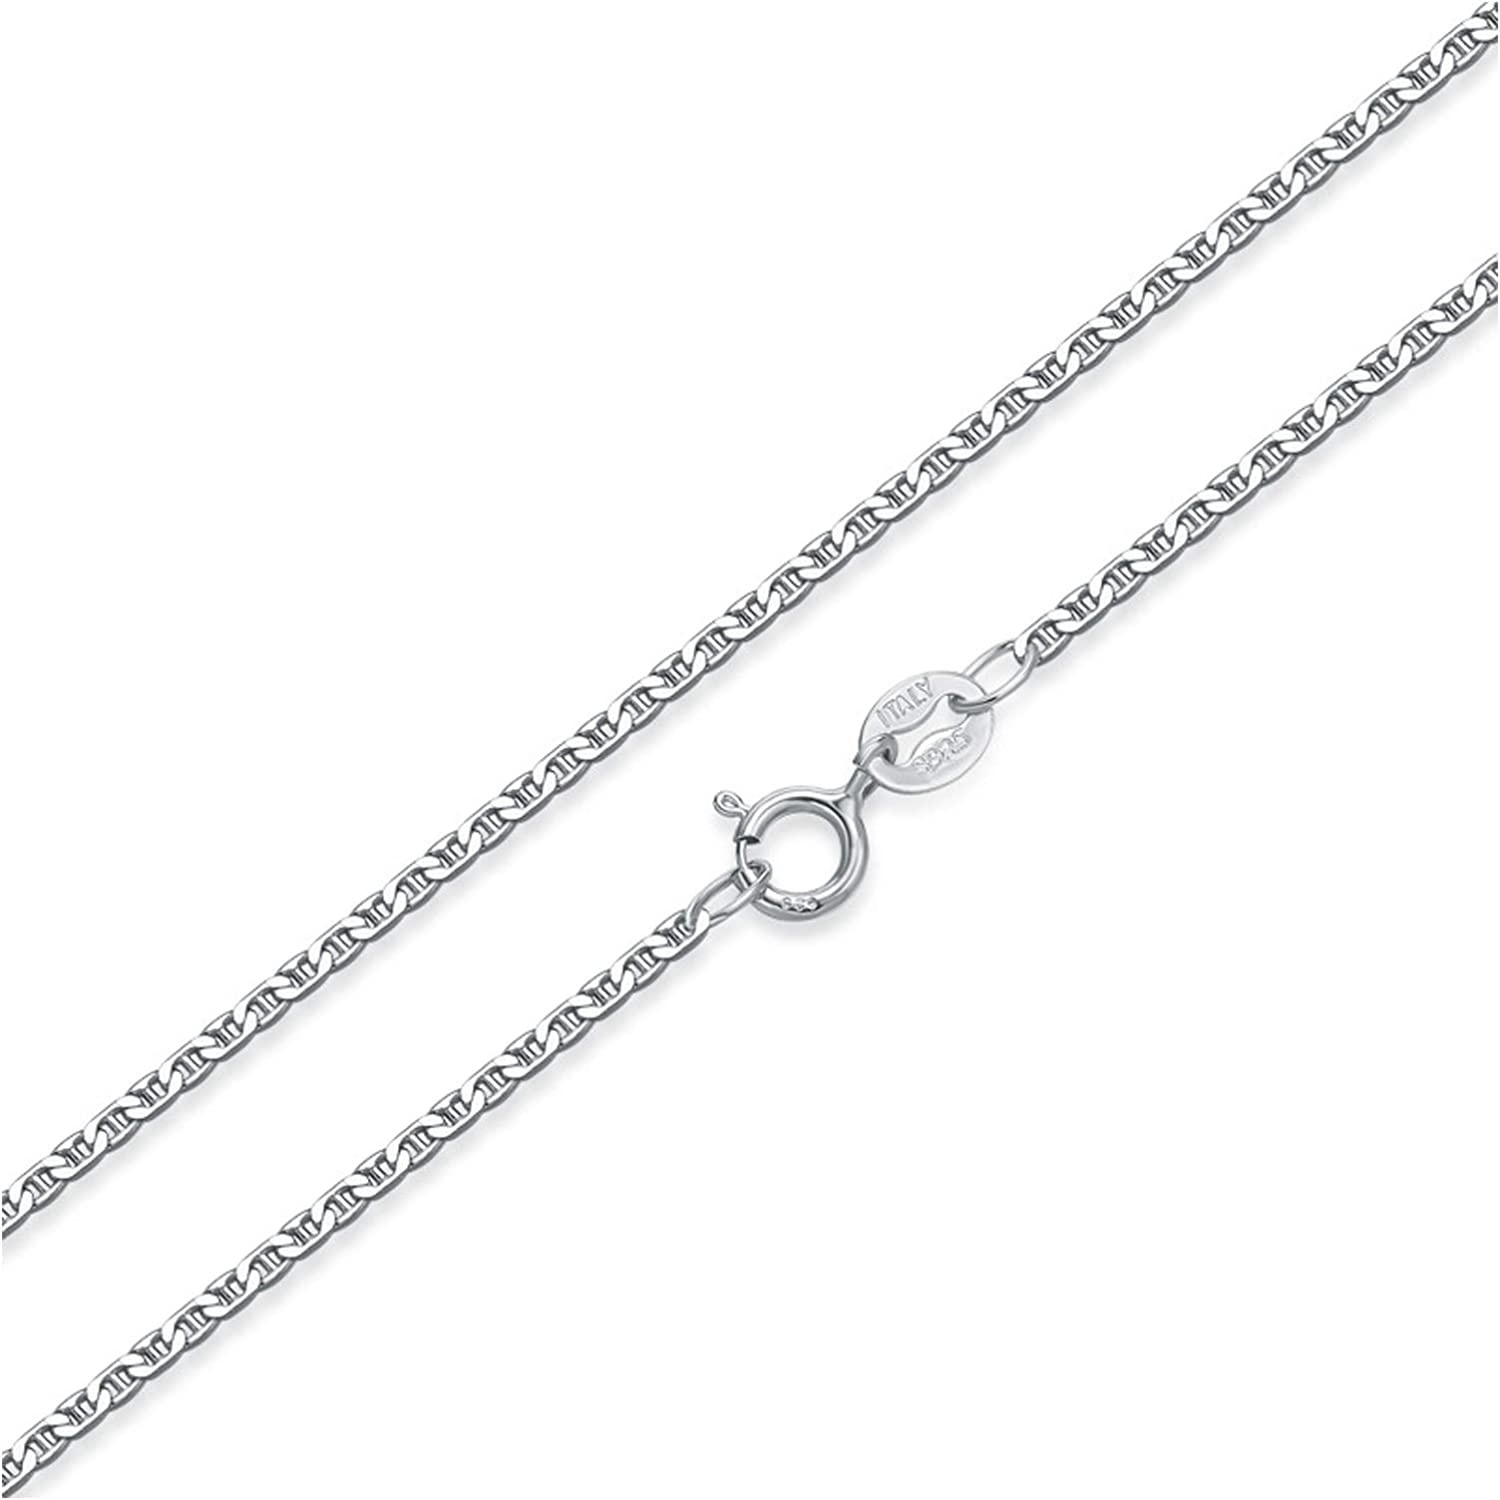 Made in Italy - Sterling Silver TM Necklace, Anklet, Bracelet Rope Chain